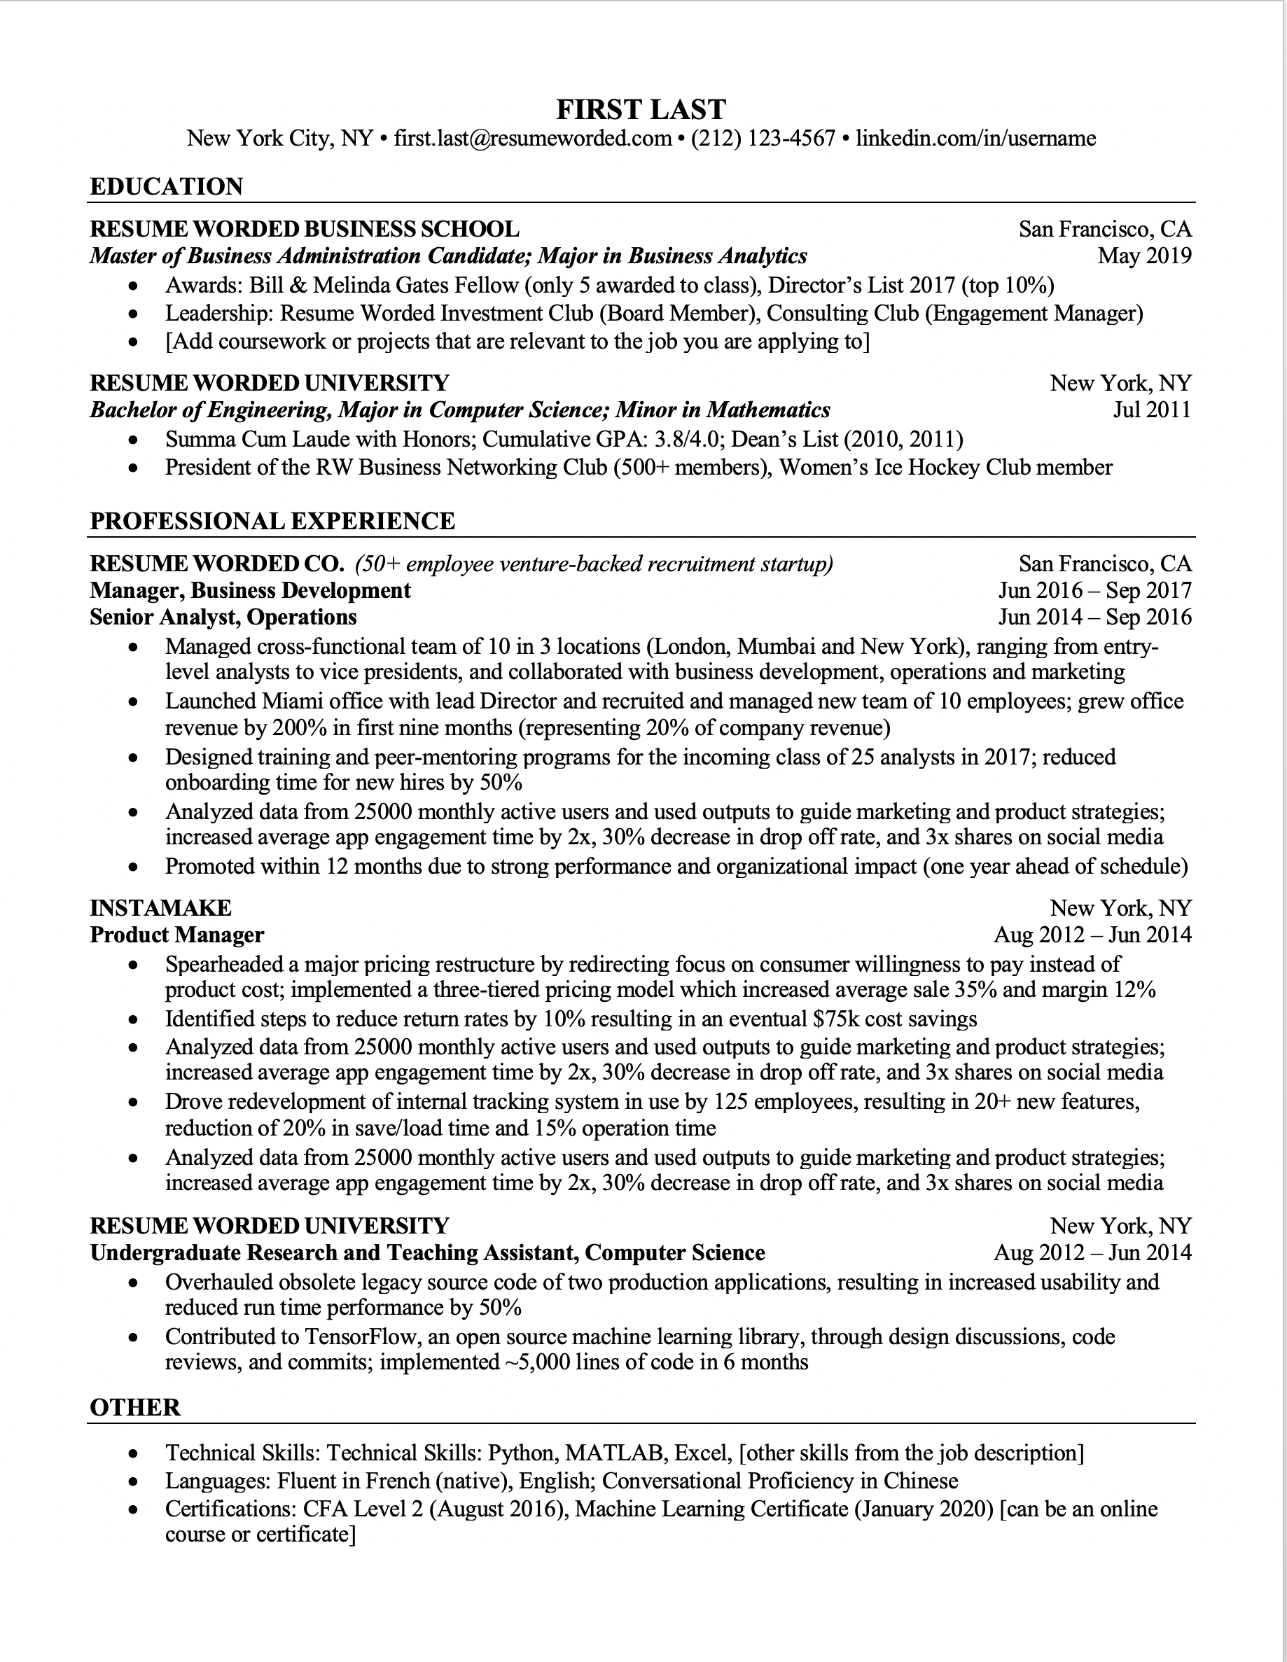 Professional ATS Resume Templates for Experienced Hires and College Students or Grads  for free